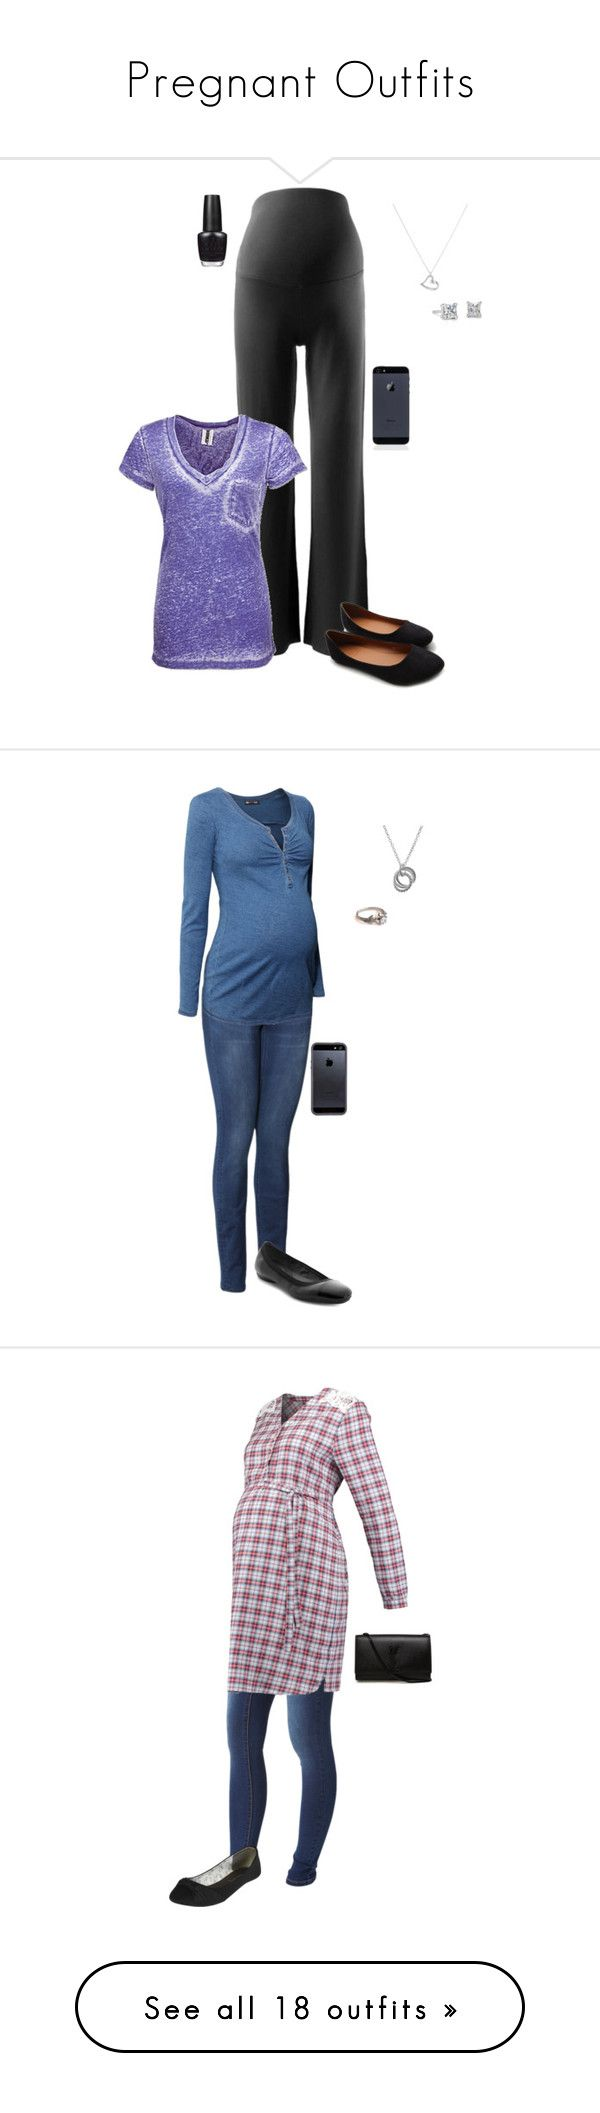 """Pregnant Outfits"" by gone-girl ❤ liked on Polyvore featuring Isabella Oliver, BKE, Argento Vivo, Blue Nile, OPI, Ollio, H&M, Calvin Klein, Tavik Swimwear and Mama.licious"